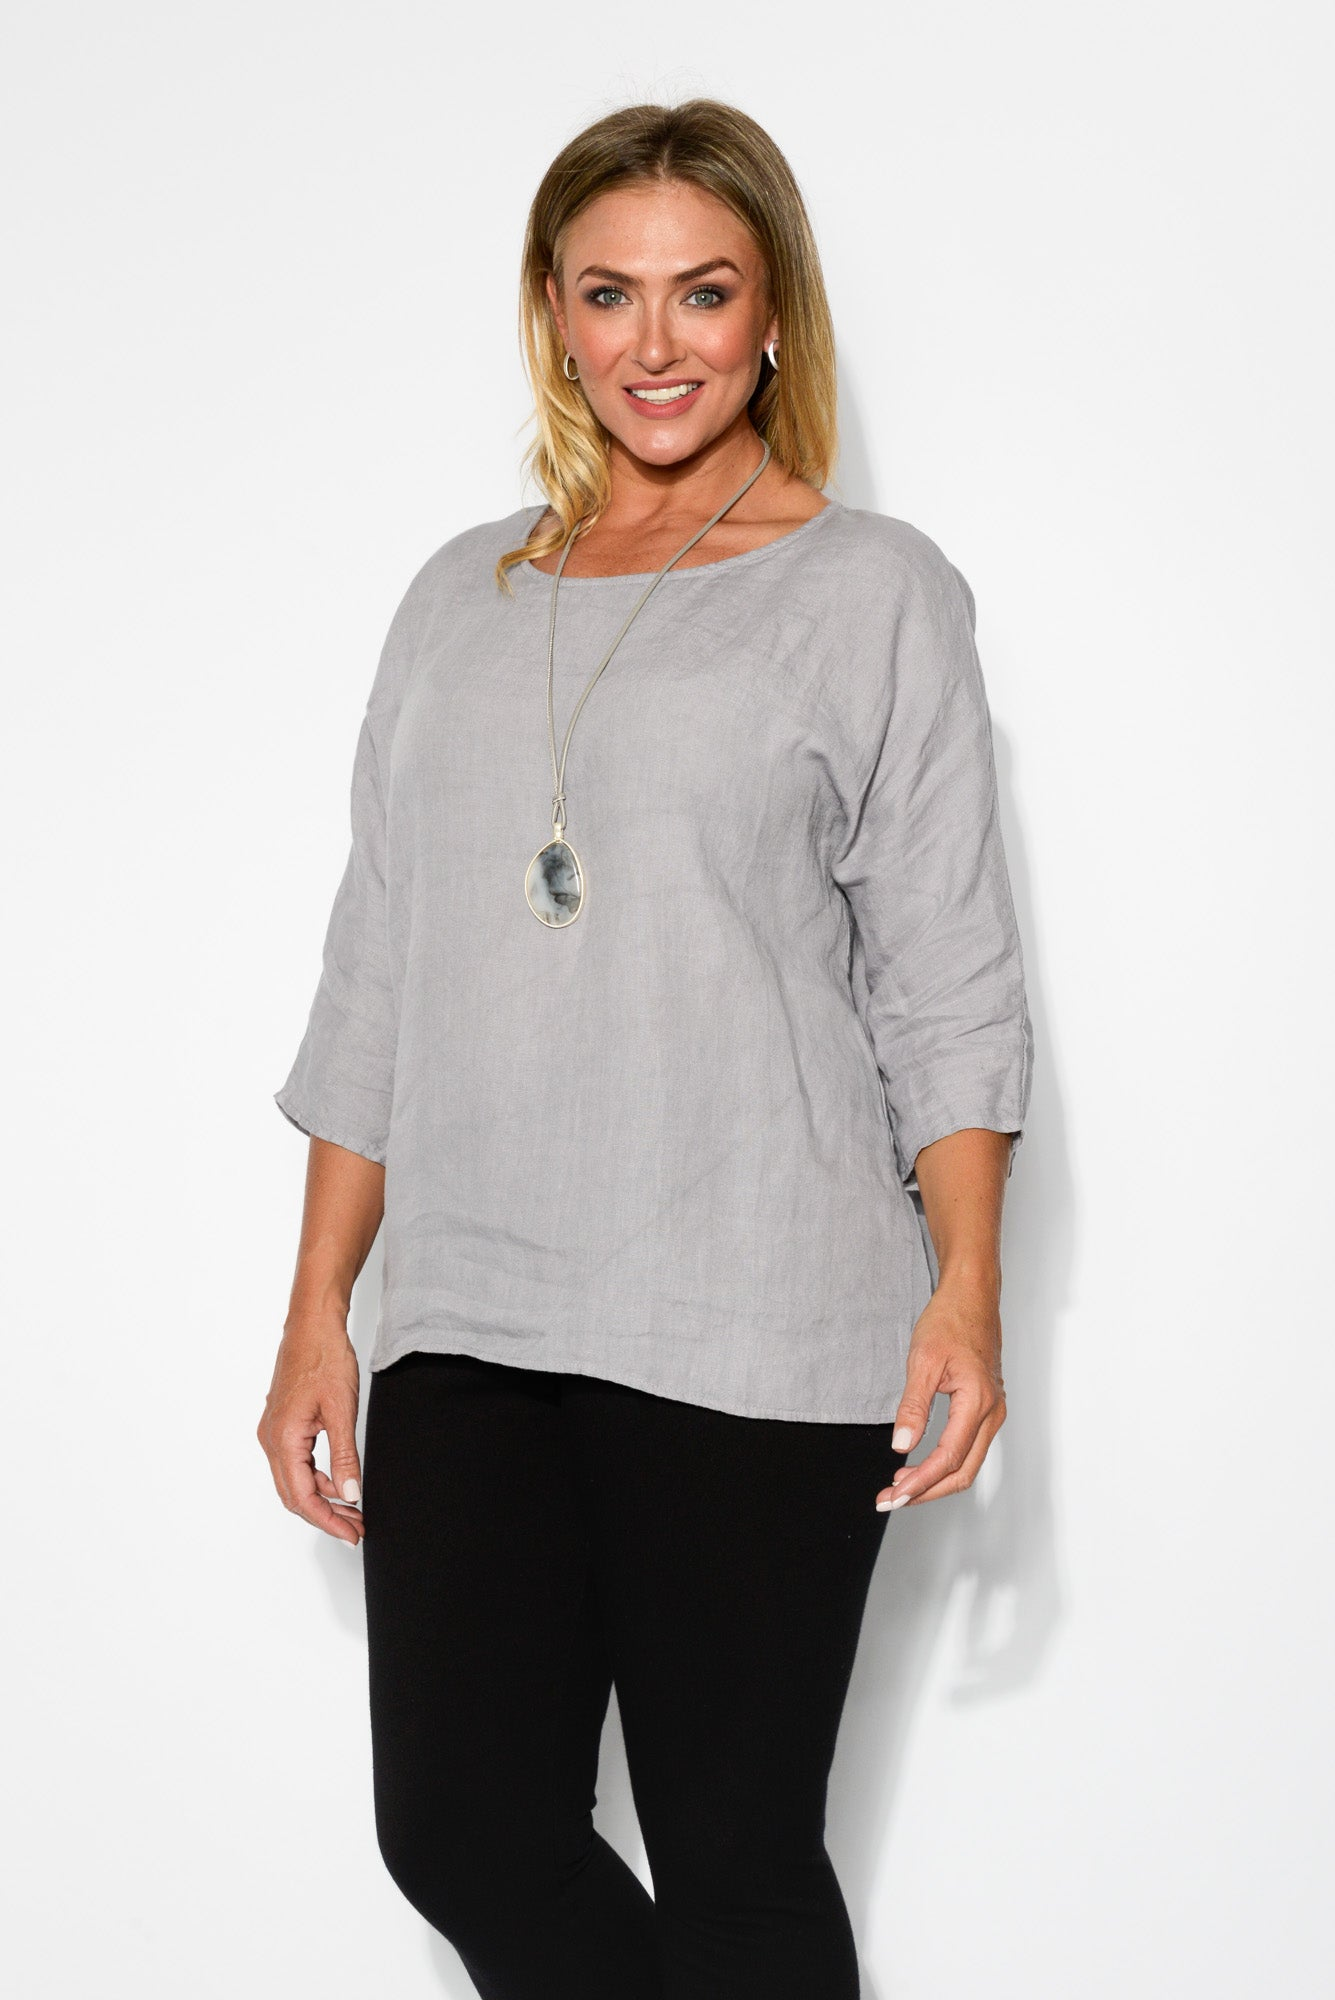 Dara Light Grey Linen Top - Blue Bungalow